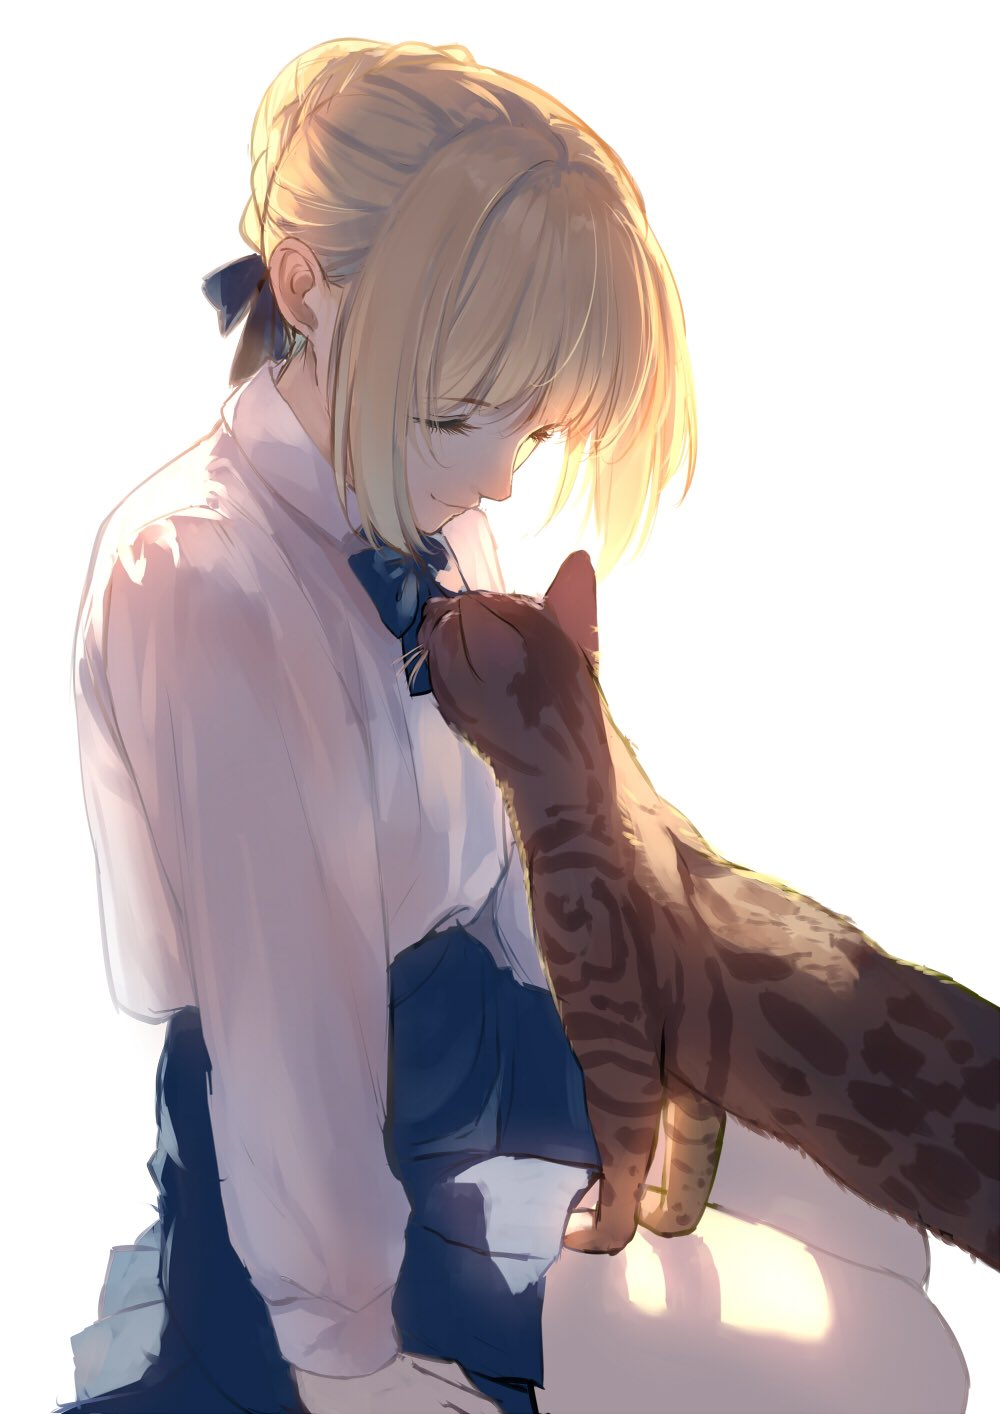 1girl animal arm_at_side arm_support artoria_pendragon_(all) backlighting bangs blonde_hair blouse blue_neckwear blue_ribbon blue_skirt bow bowtie braid brown_cat caidychen cat closed_mouth collared_blouse commentary english_commentary eyelashes fate/stay_night fate_(series) french_braid hair_bun hair_intakes hair_ribbon high-waist_skirt highres long_sleeves looking_down looking_up medium_skirt no_legwear pleated_skirt ribbon saber shiny shiny_hair sidelocks simple_background sitting skirt smile white_background white_blouse yokozuwari